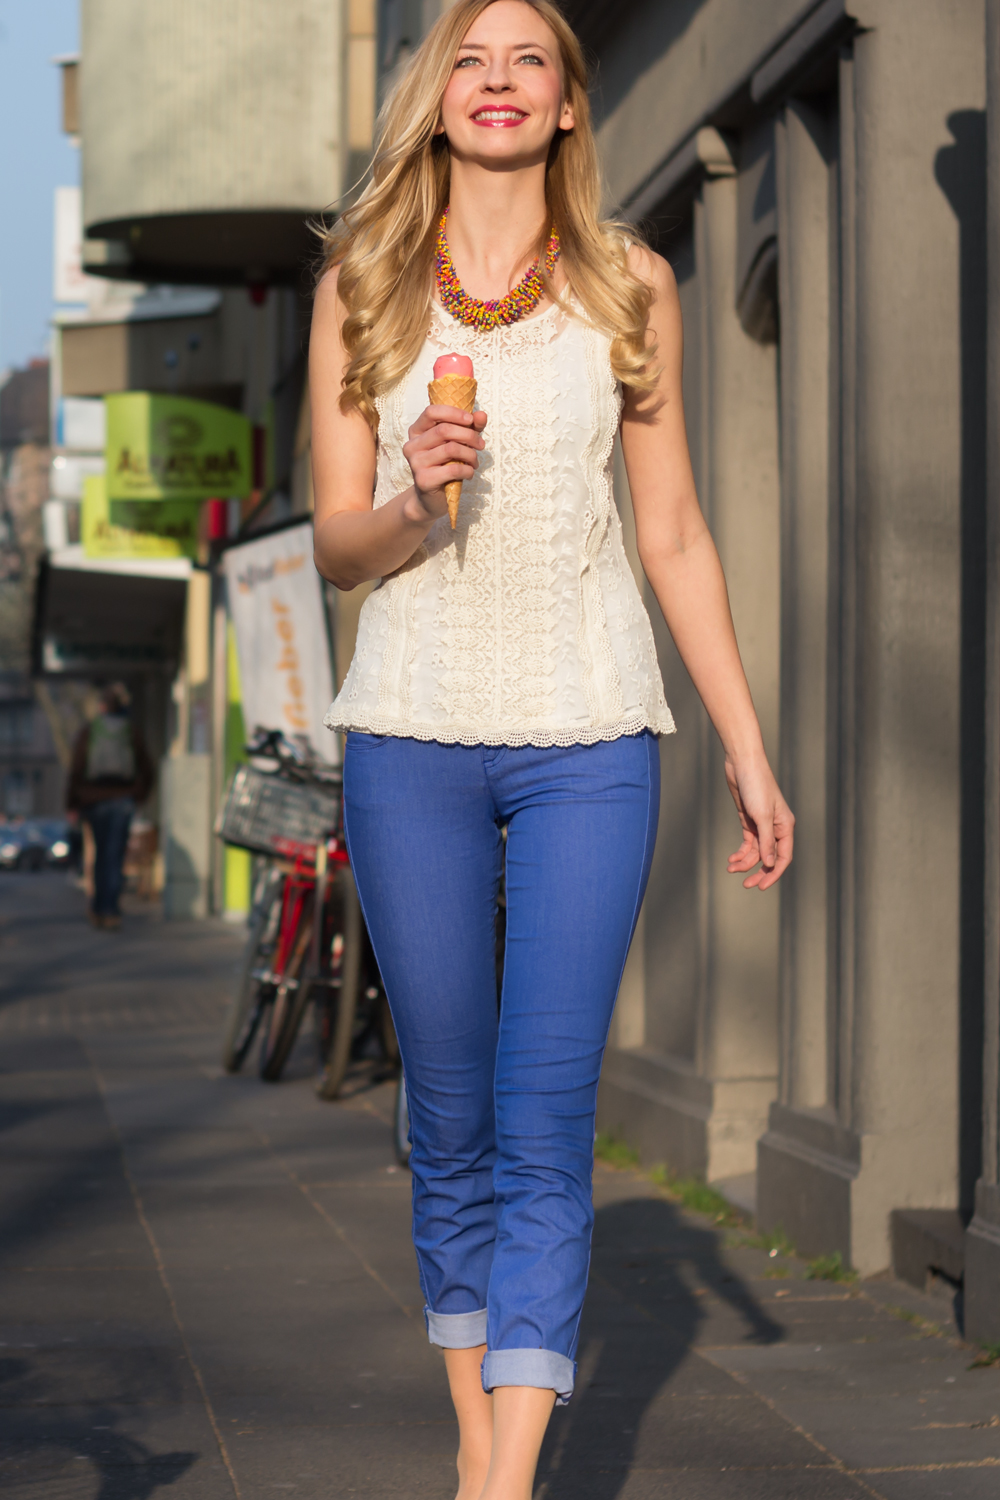 Jeggings, Spitzen-Top, bunte Perlenkette und Eis // jeggings, lace top, multicolored necklace and ice cream